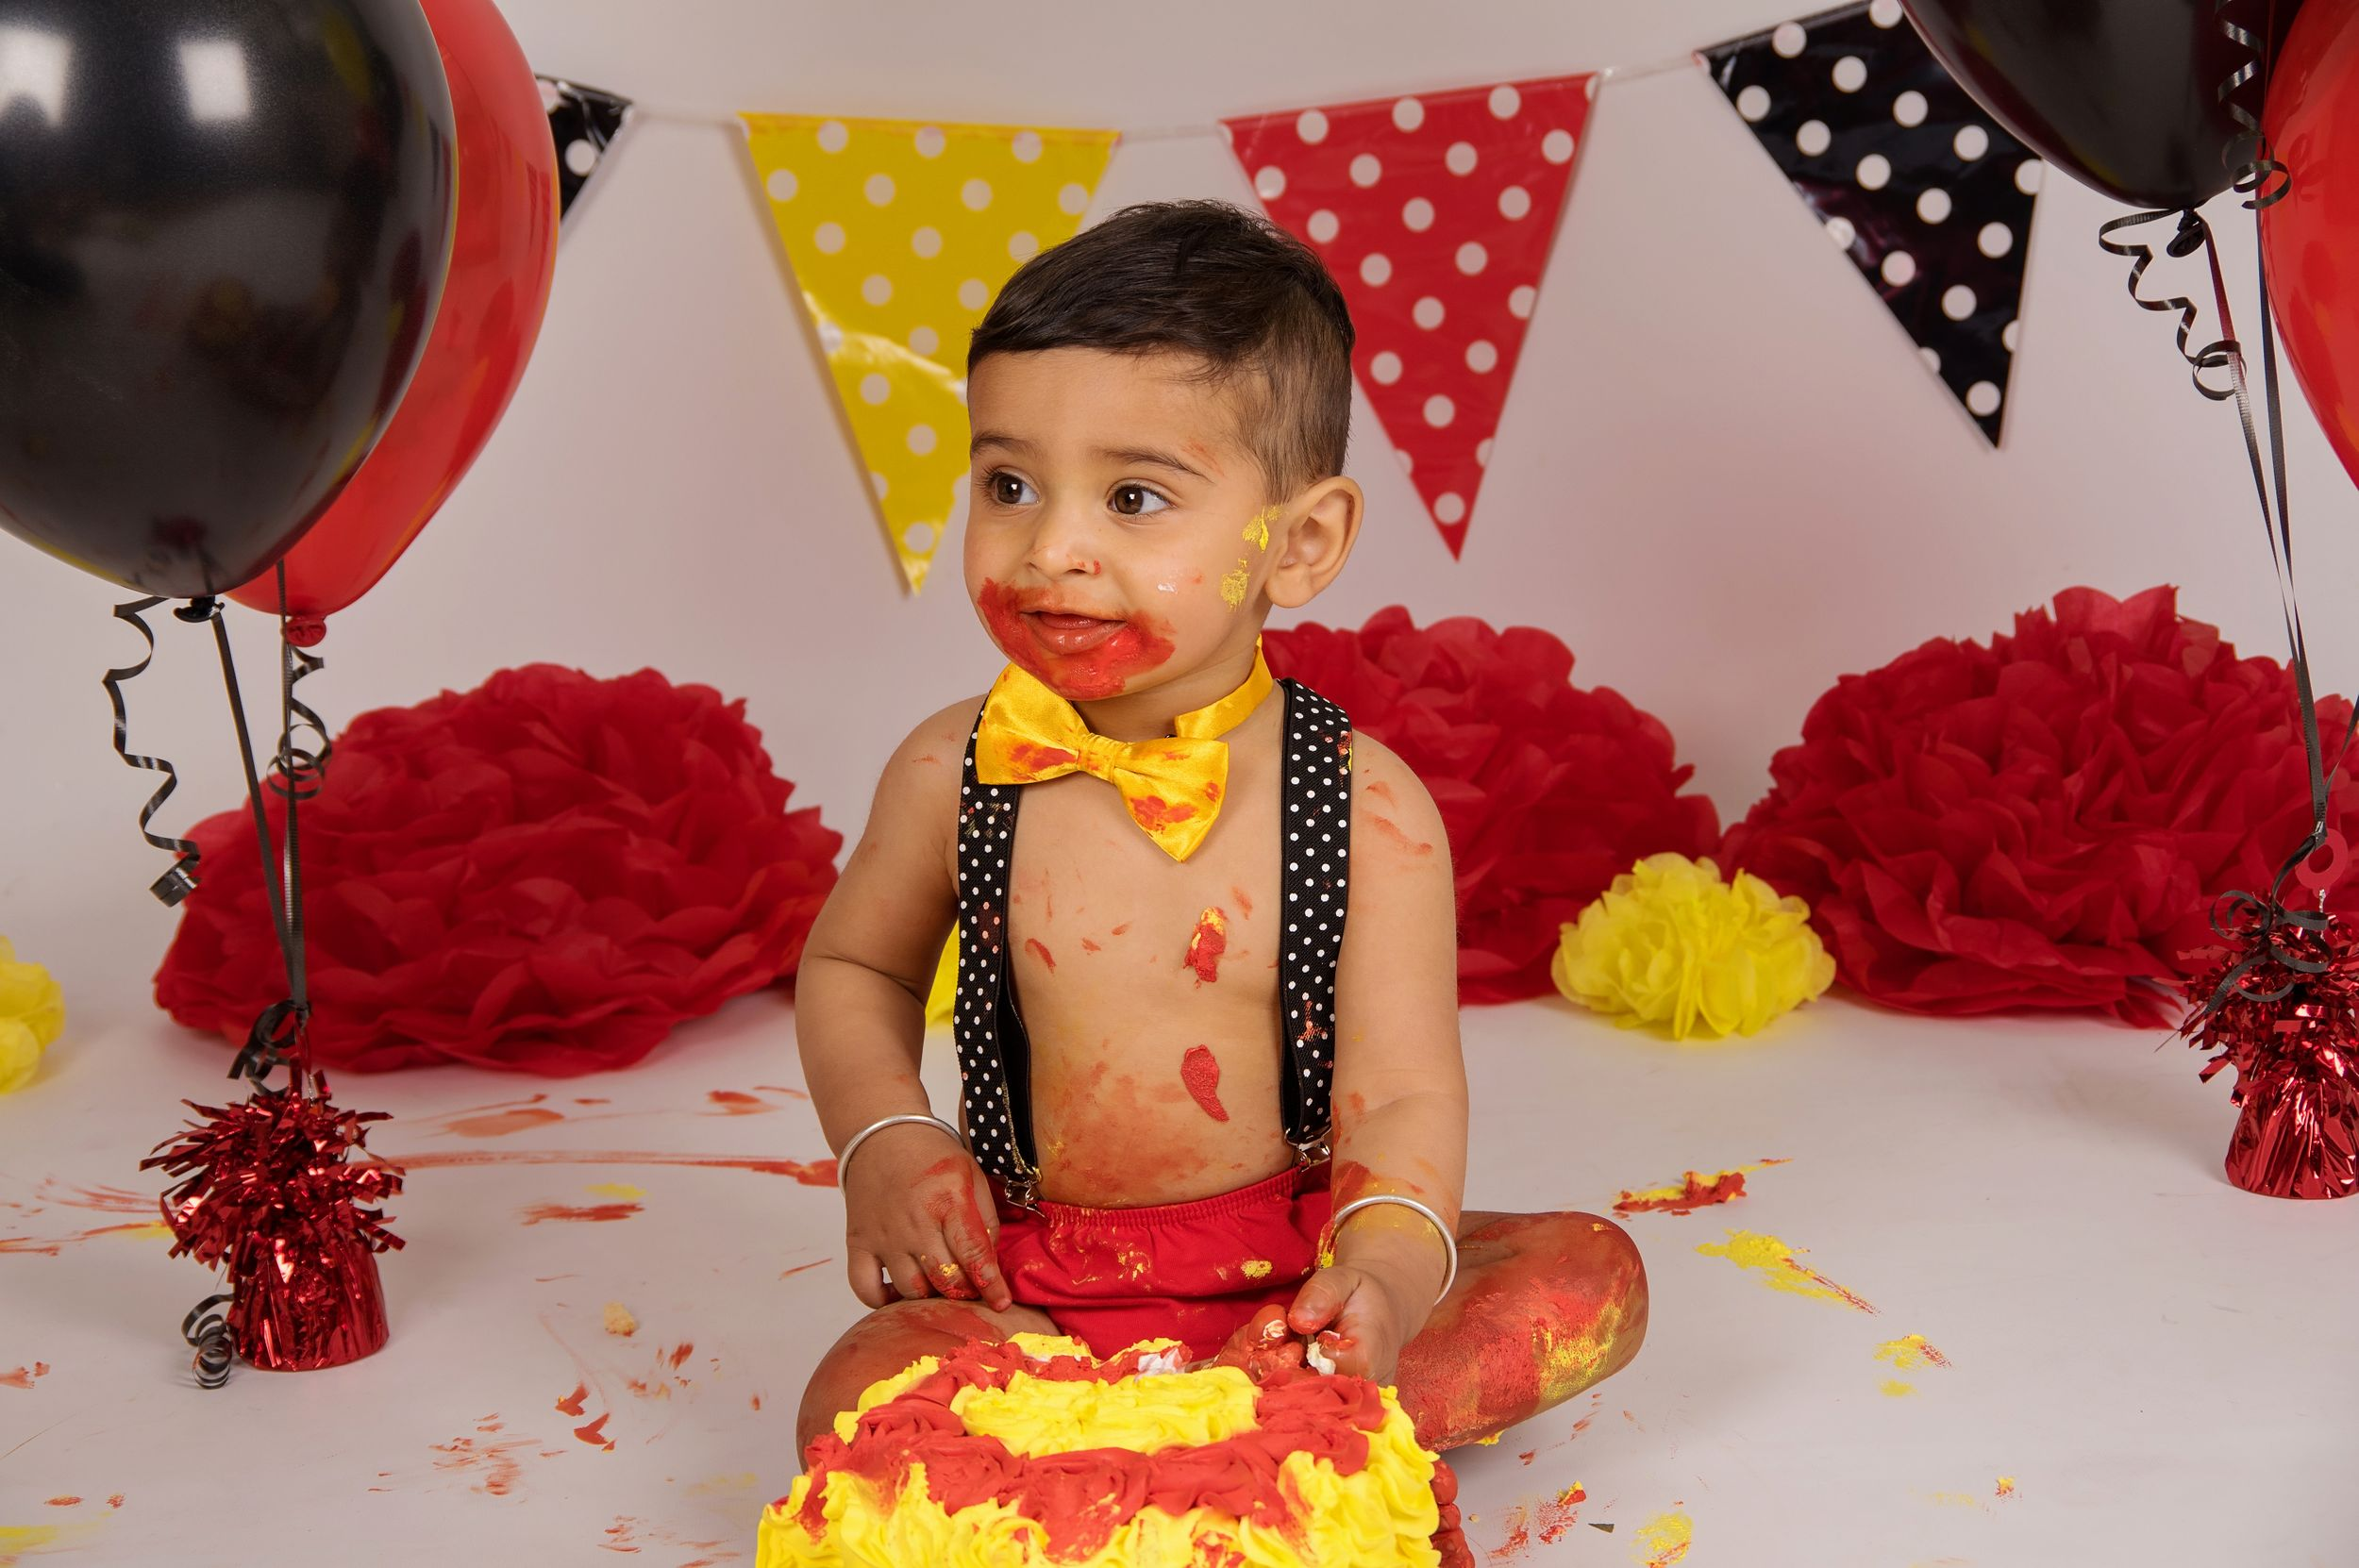 baby eating cake with mickey mouse decorations and balloons